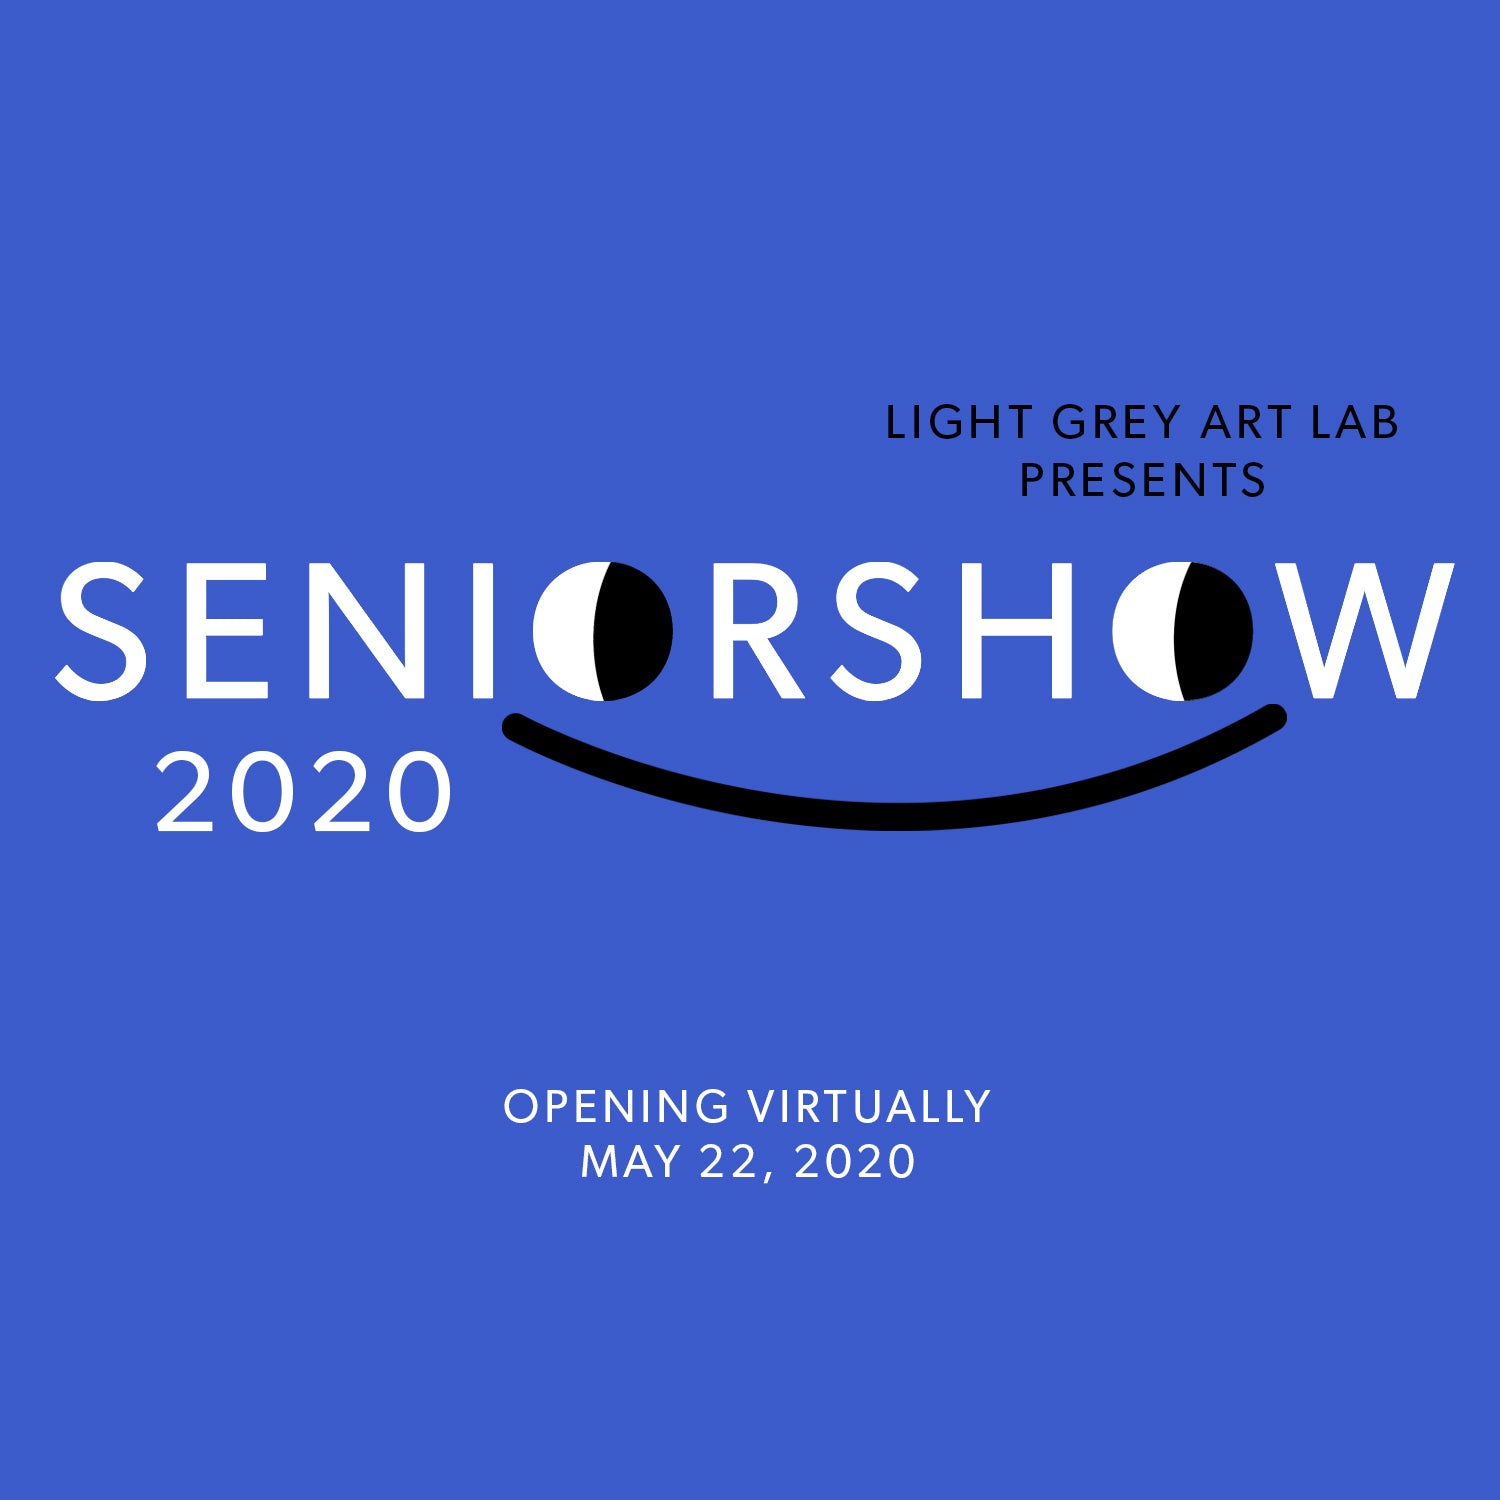 Scholarships and Sponsorship for the Senior Show 2020 Online Exhibition